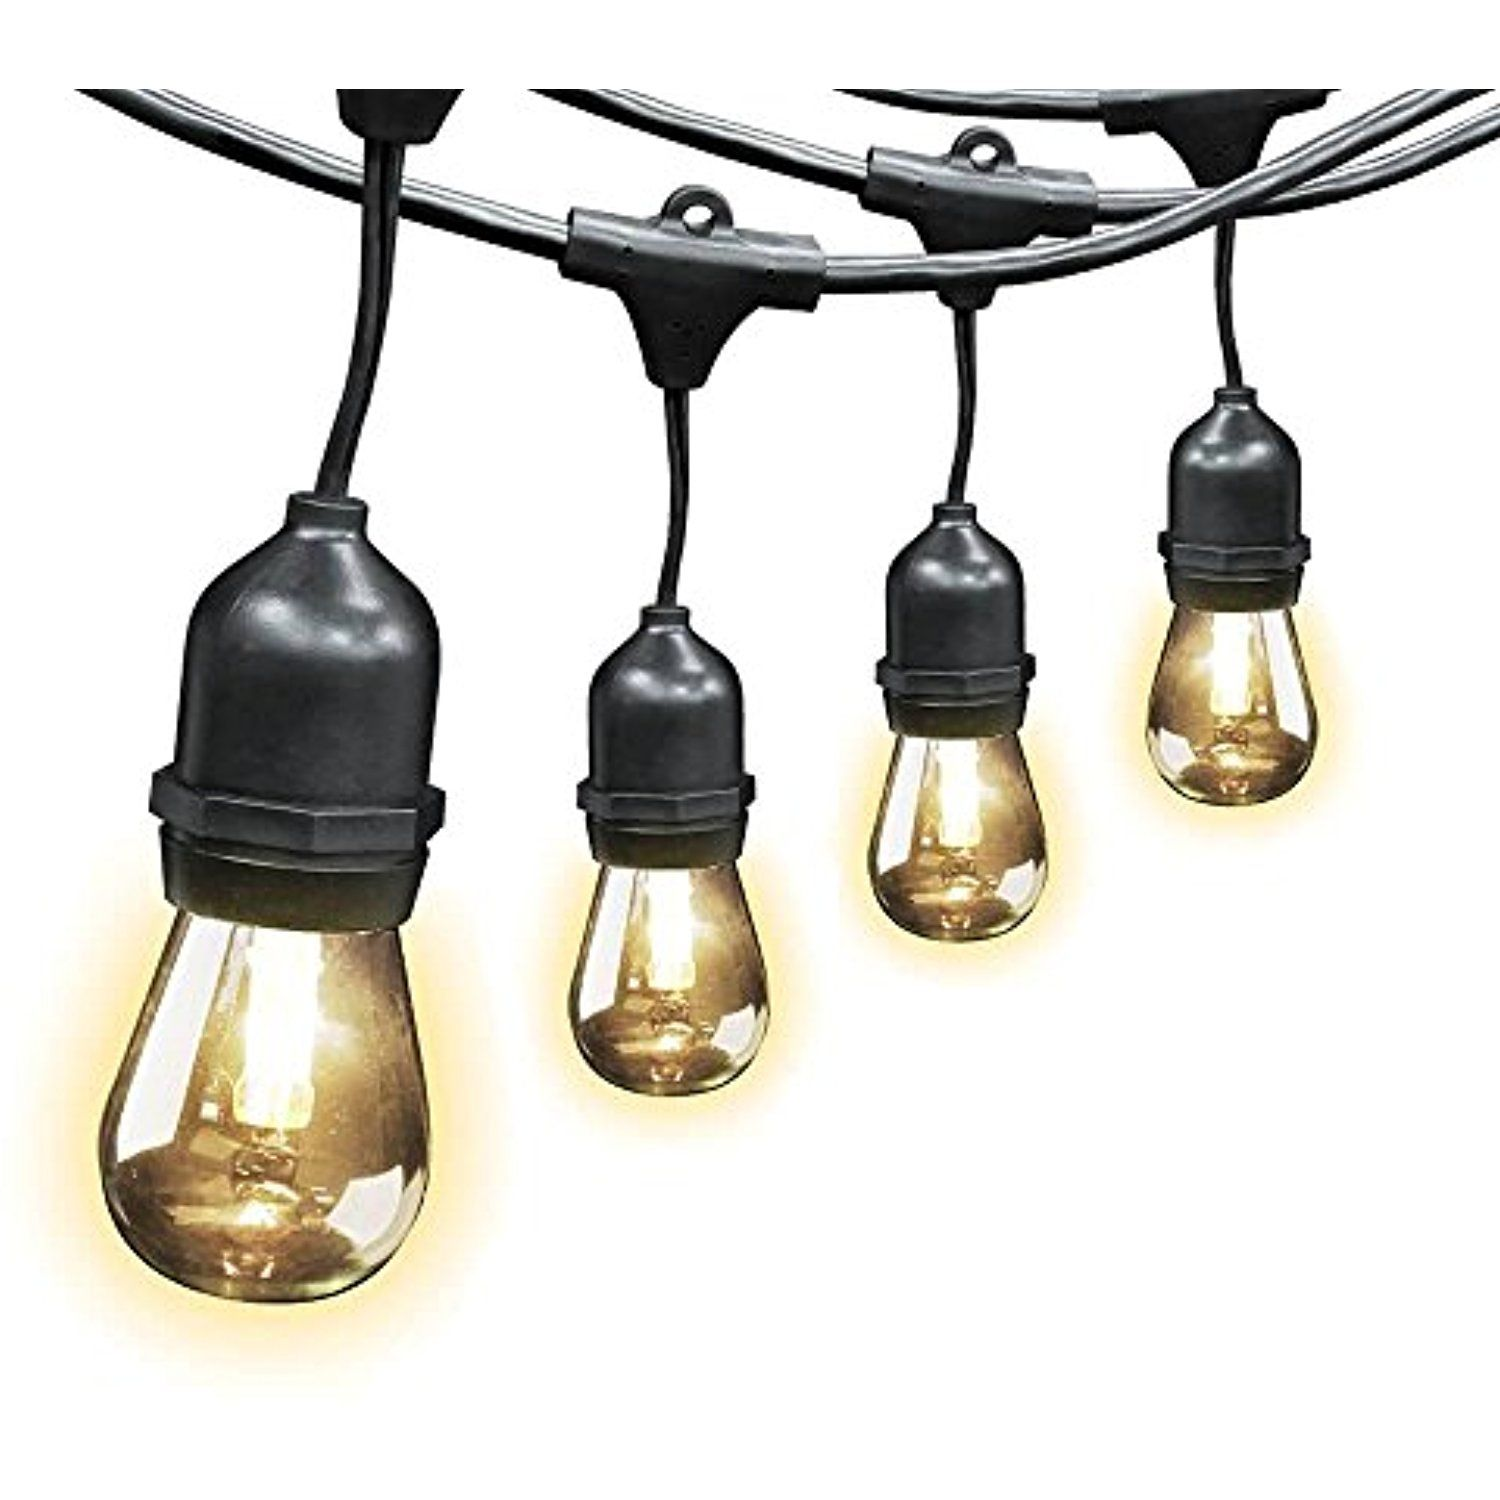 Feit Electric String Lights Adorable Feit Electric Indooroutdoor String Lights 48Ft  Great For Homes Review